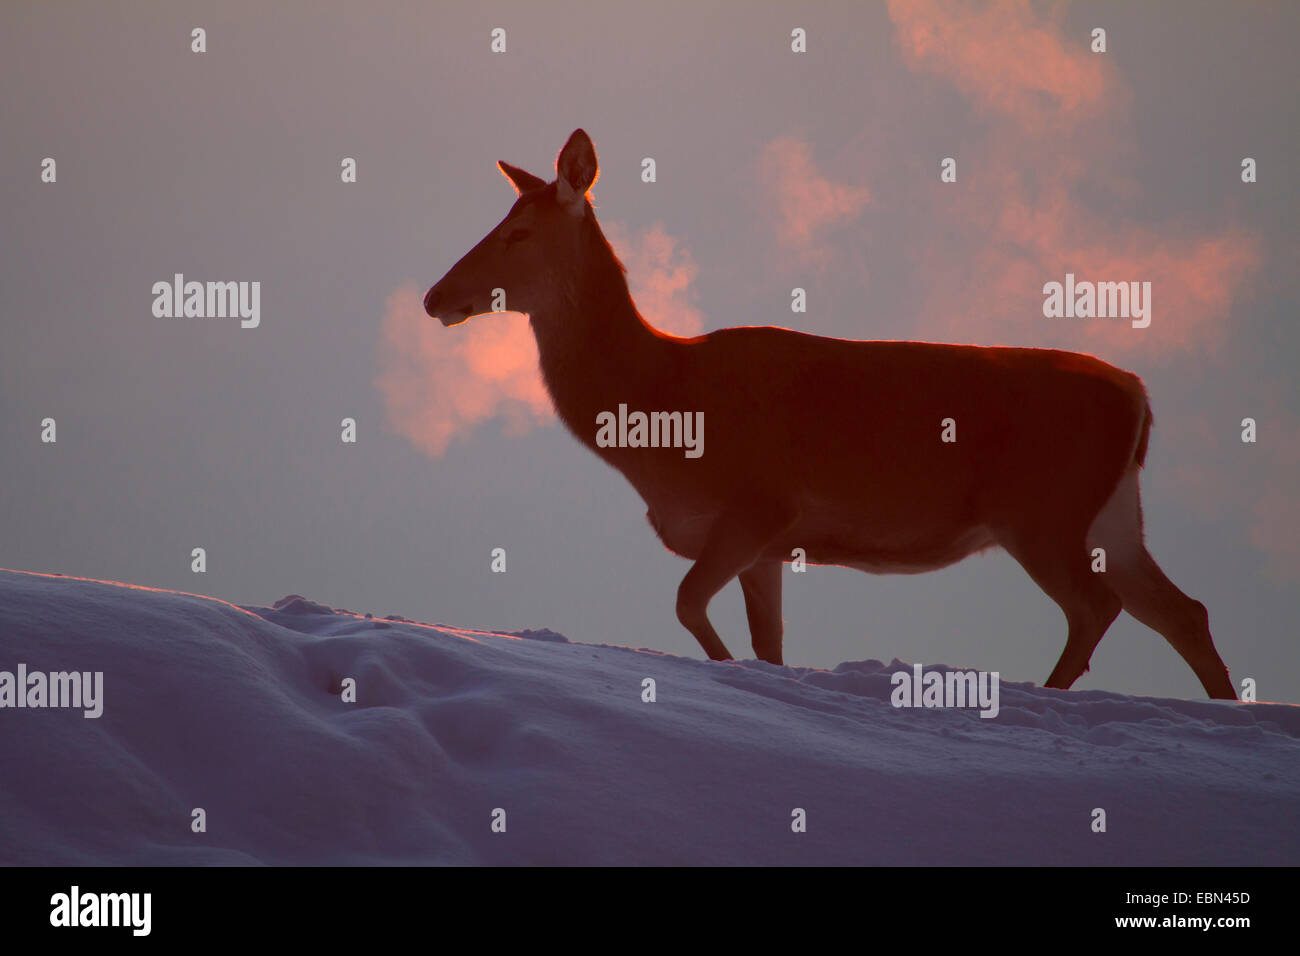 red deer (Cervus elaphus), hind walking up a snow-covered slope at sunset, Austria, Vorarlberg - Stock Image